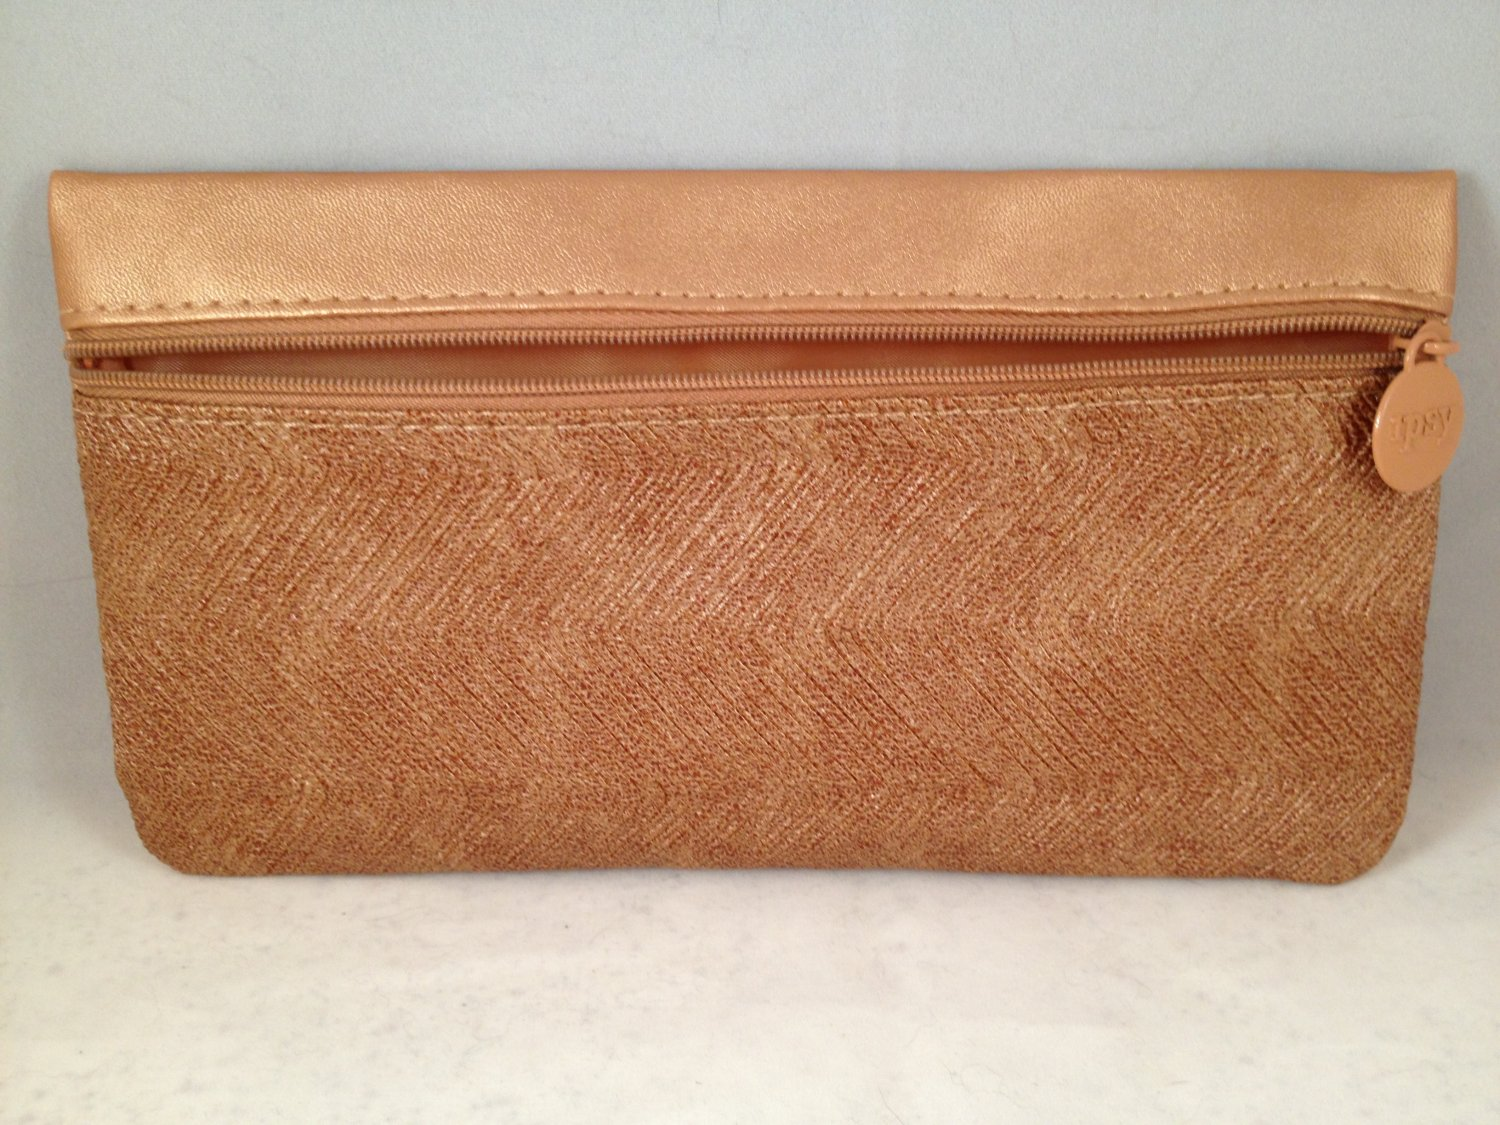 Ipsy MyGlam Glam Makeup Bag Face Fashion September 2015 Golden Bronze cosmetic case zippered clutch